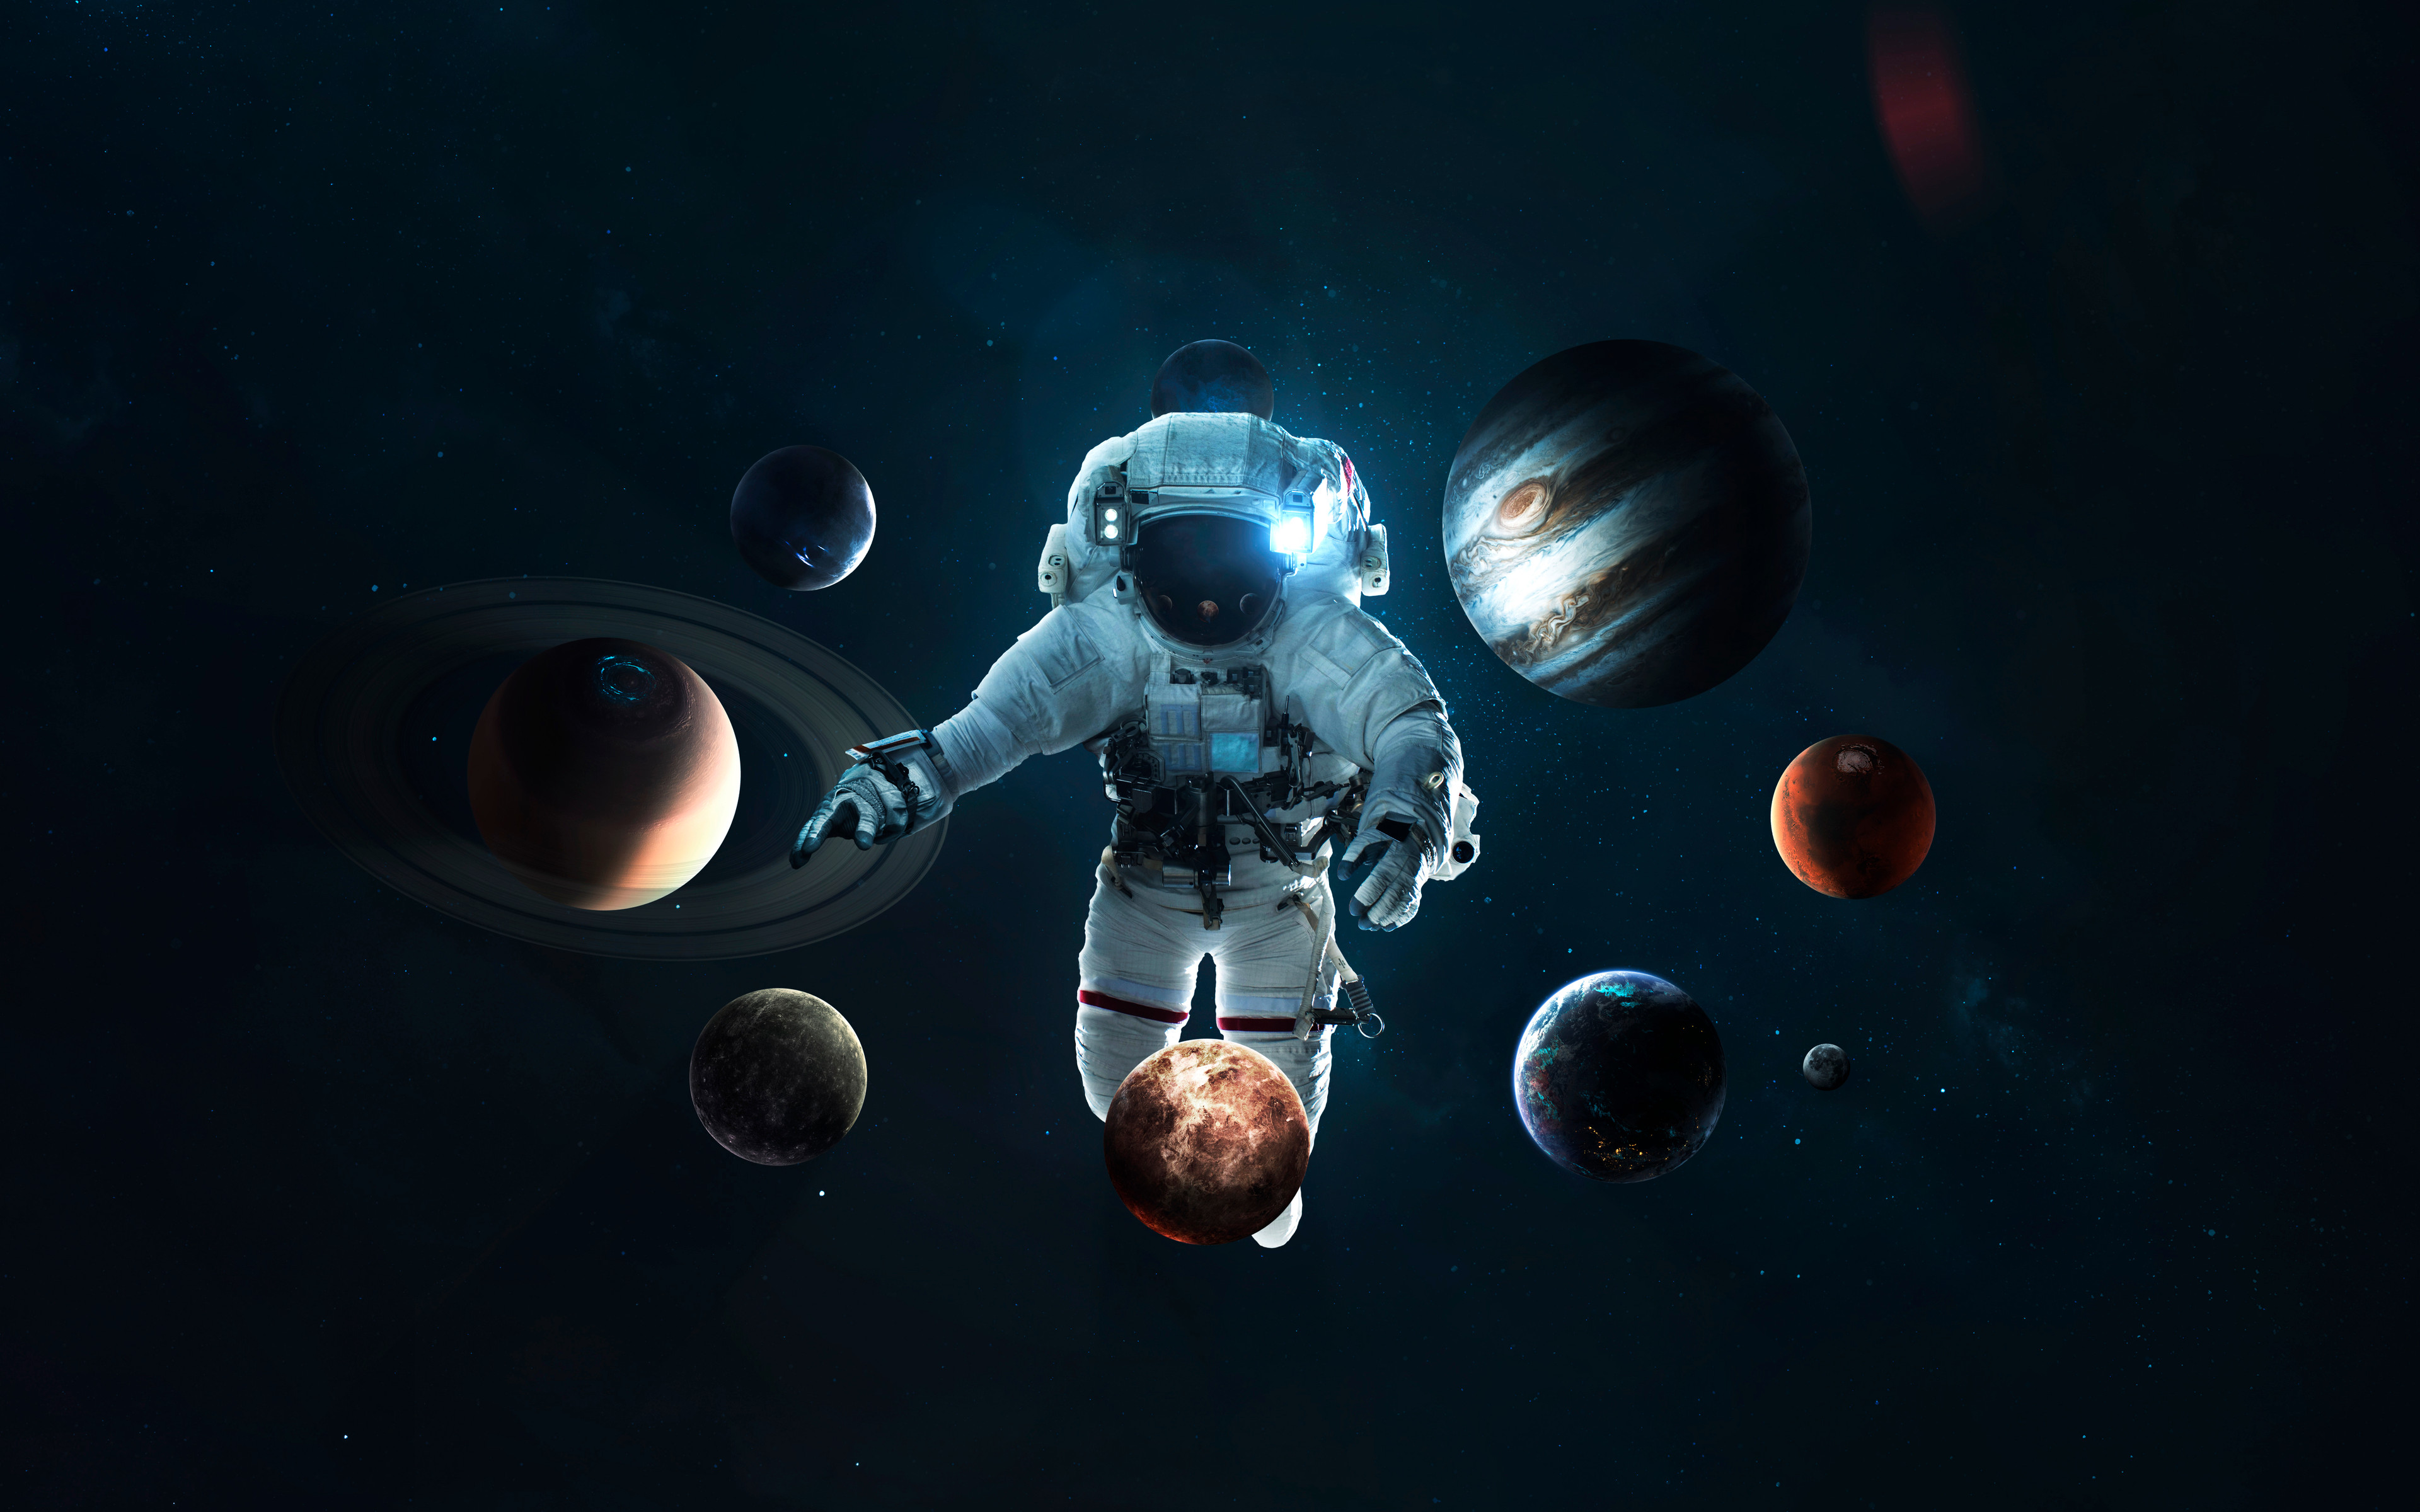 Astronaut 4k Wallpaper Planetary System Space Suit Space Travel Stars Orbital Ring Space 2465